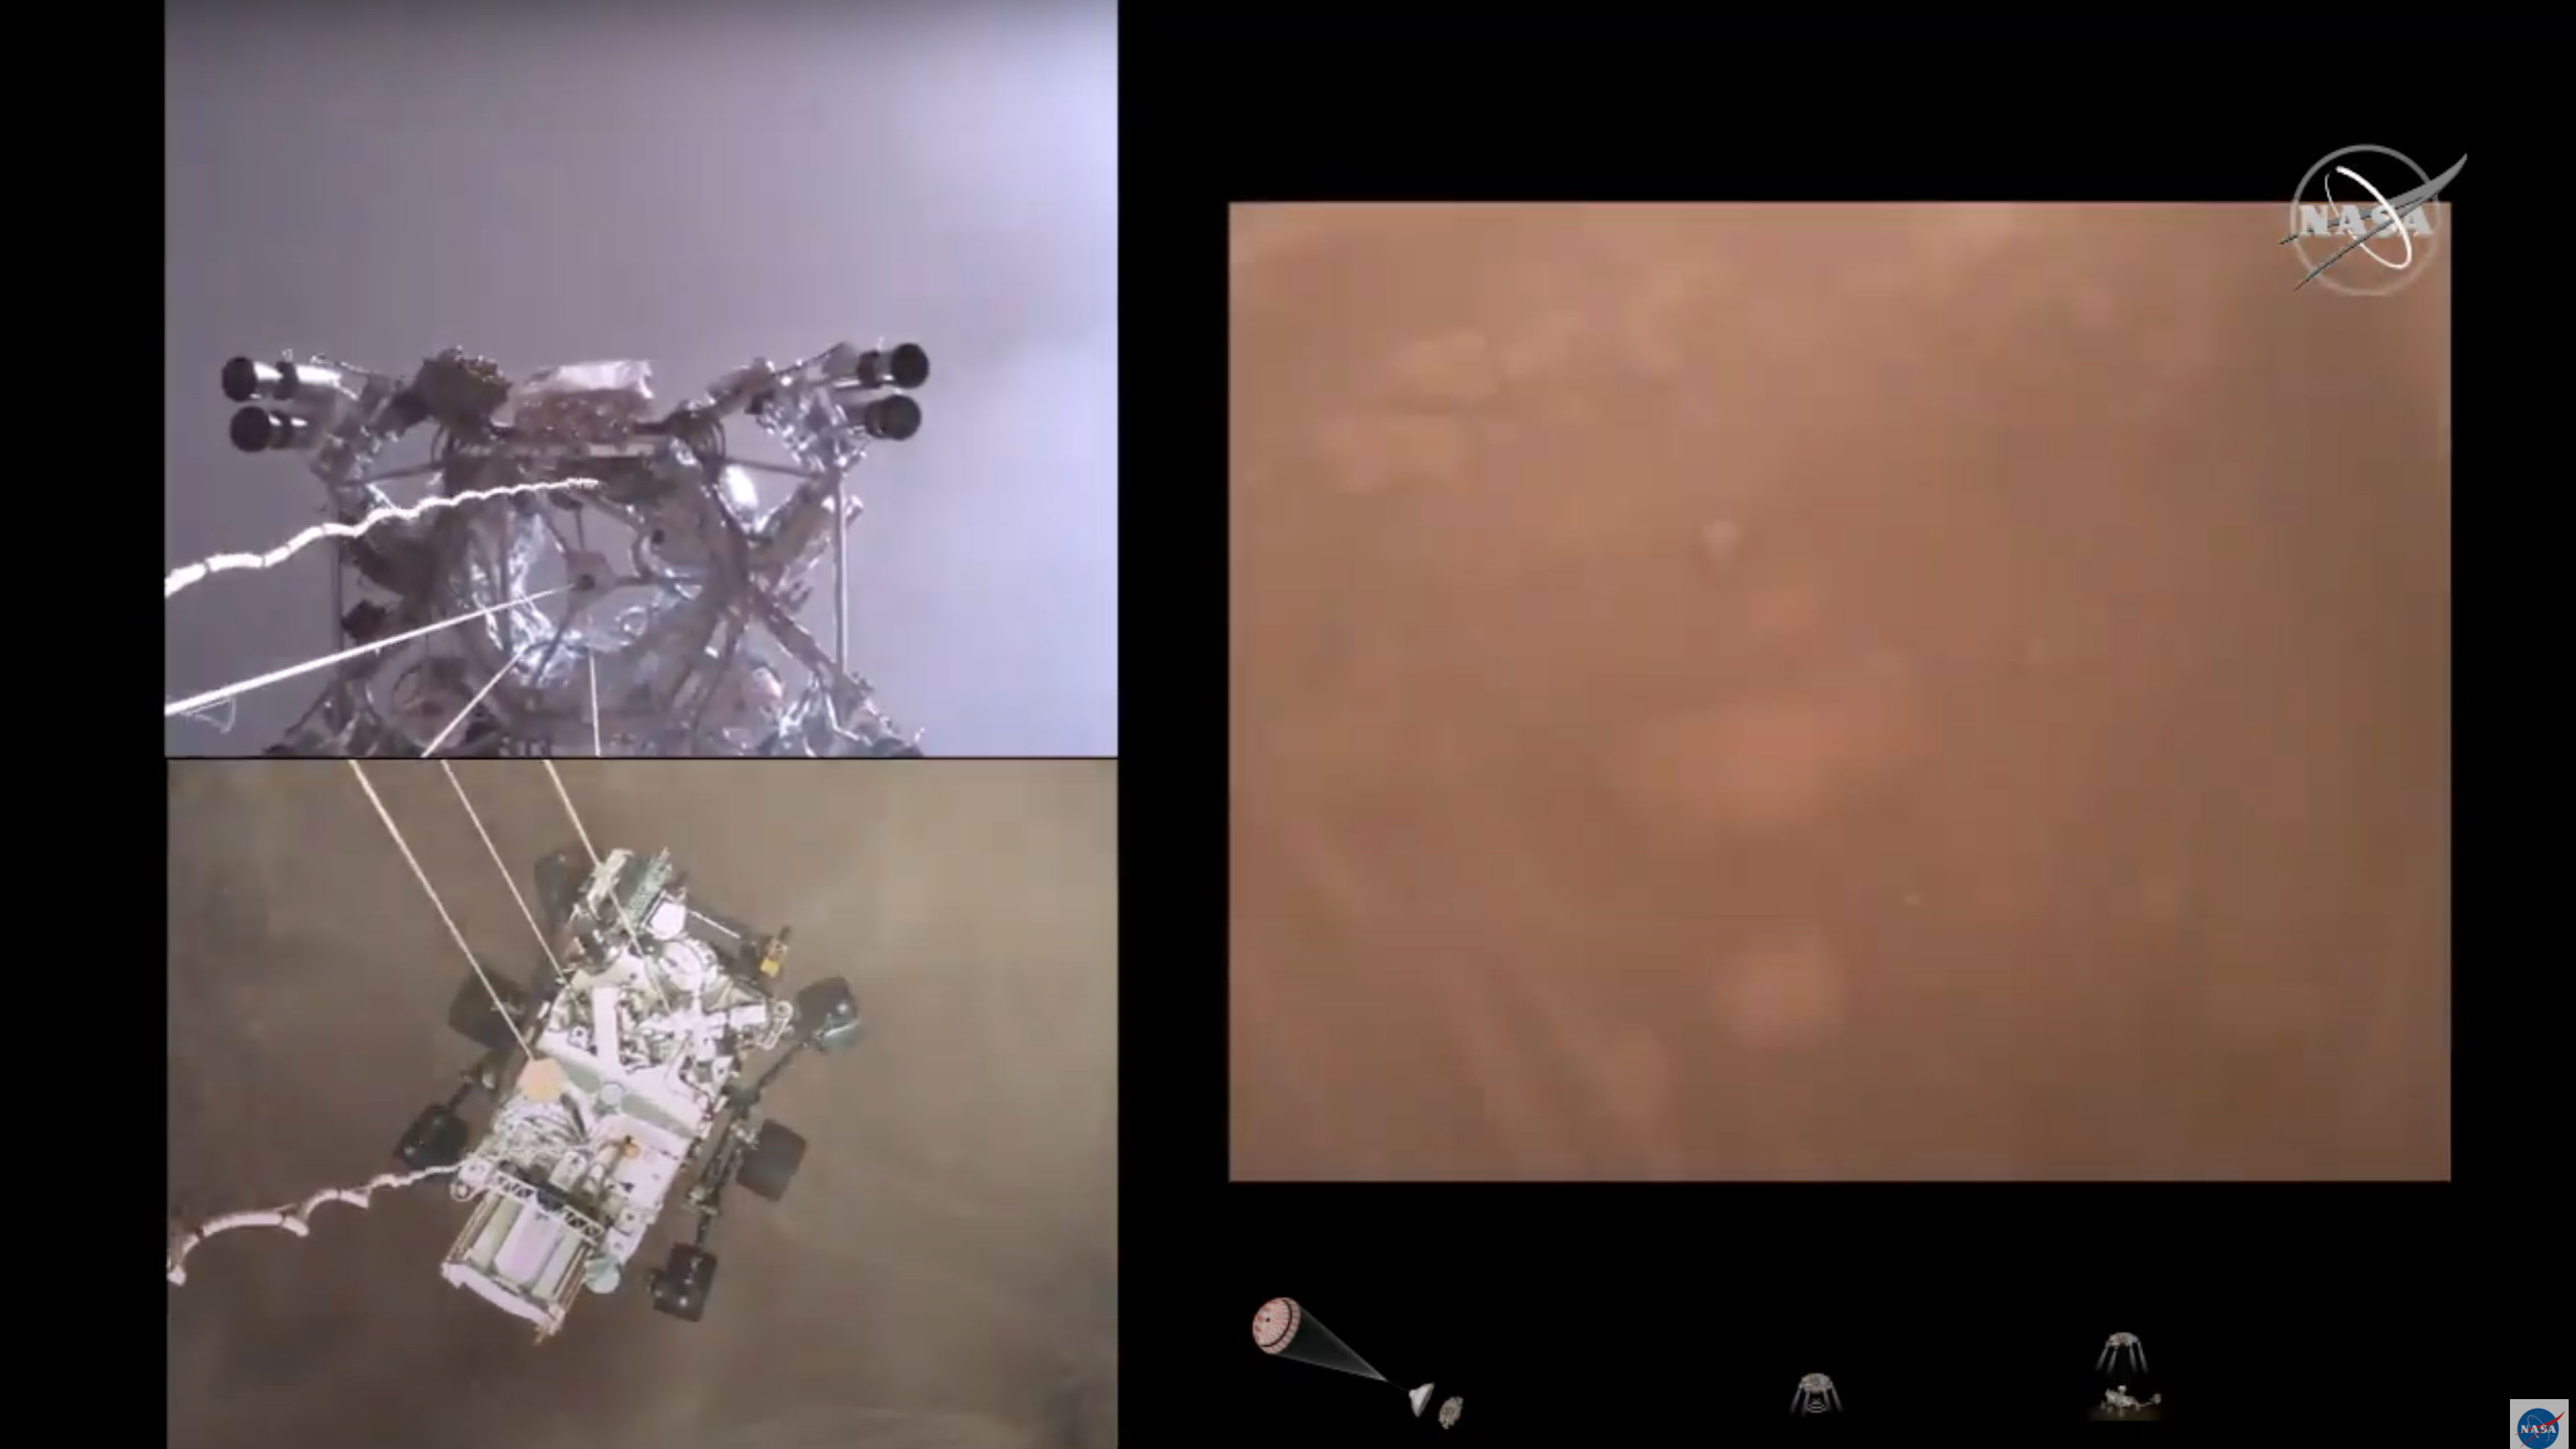 Footage of Perseverance Mars was shown by Nasa today following its successful landing on the Red Planet last week